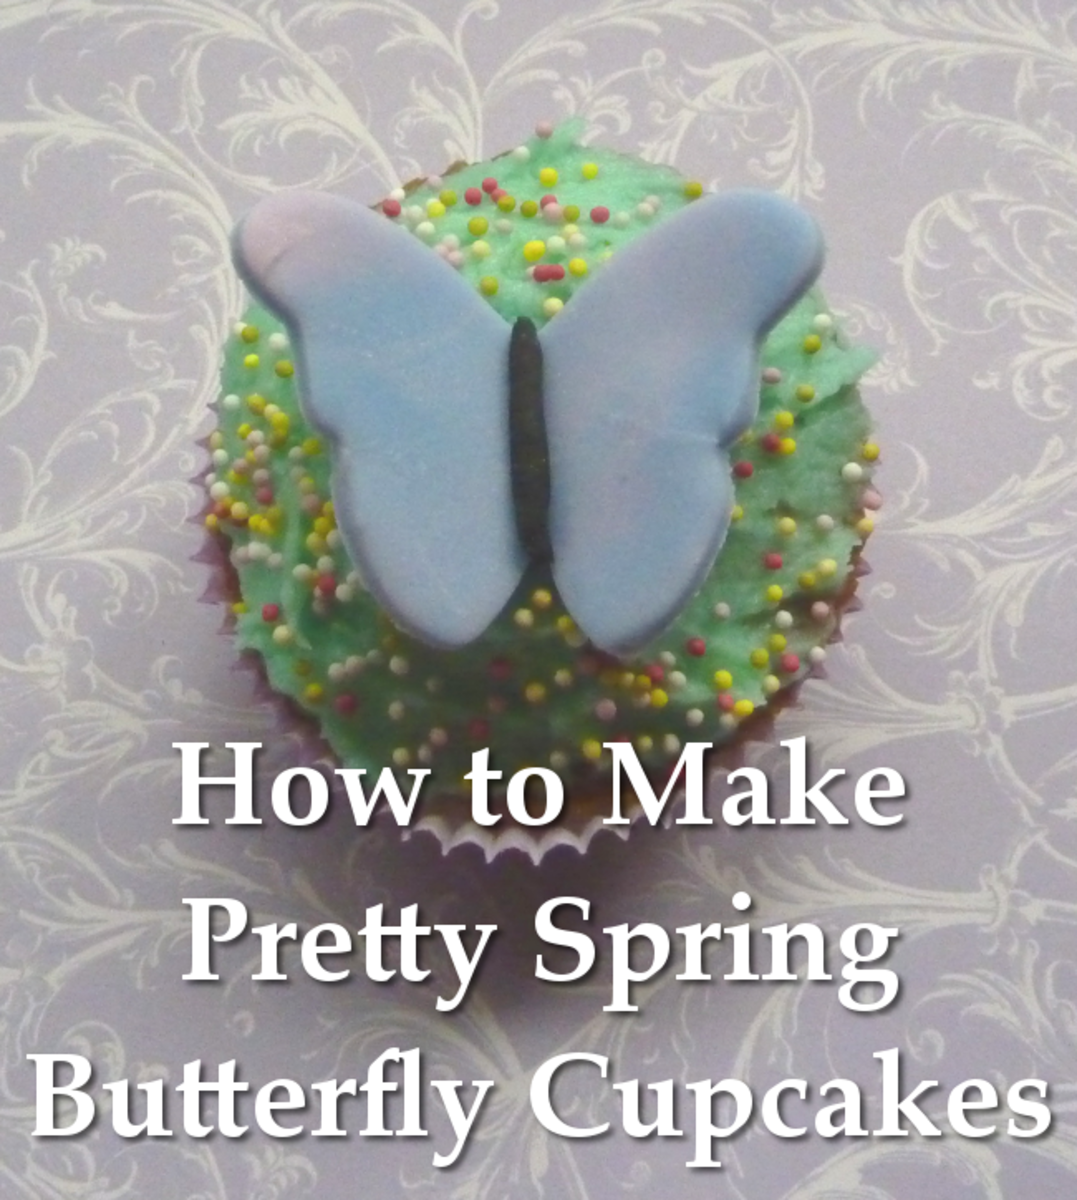 Beautiful Butterfly Cupcakes Ideal for Spring Celebrations